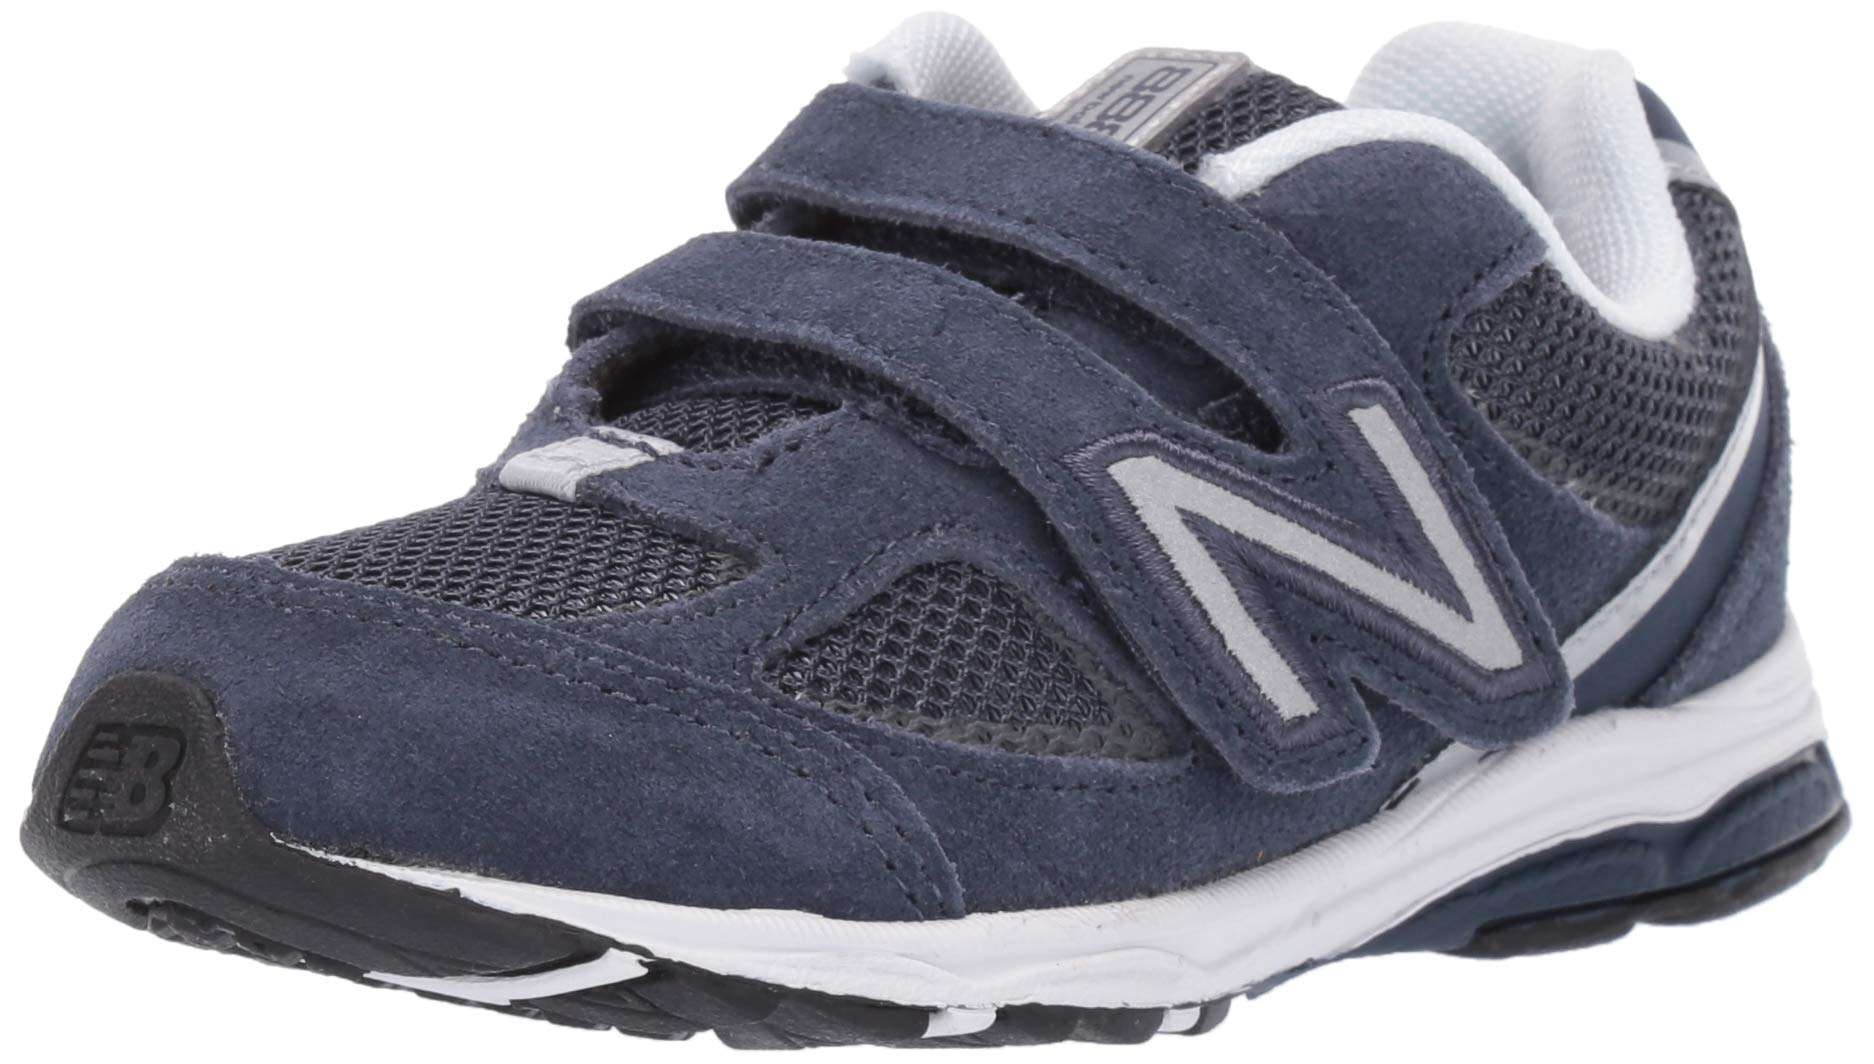 New Balance Boys' 888v2 Hook and Loop Running Shoe, Navy/Grey, 5.5 W US Toddler by New Balance